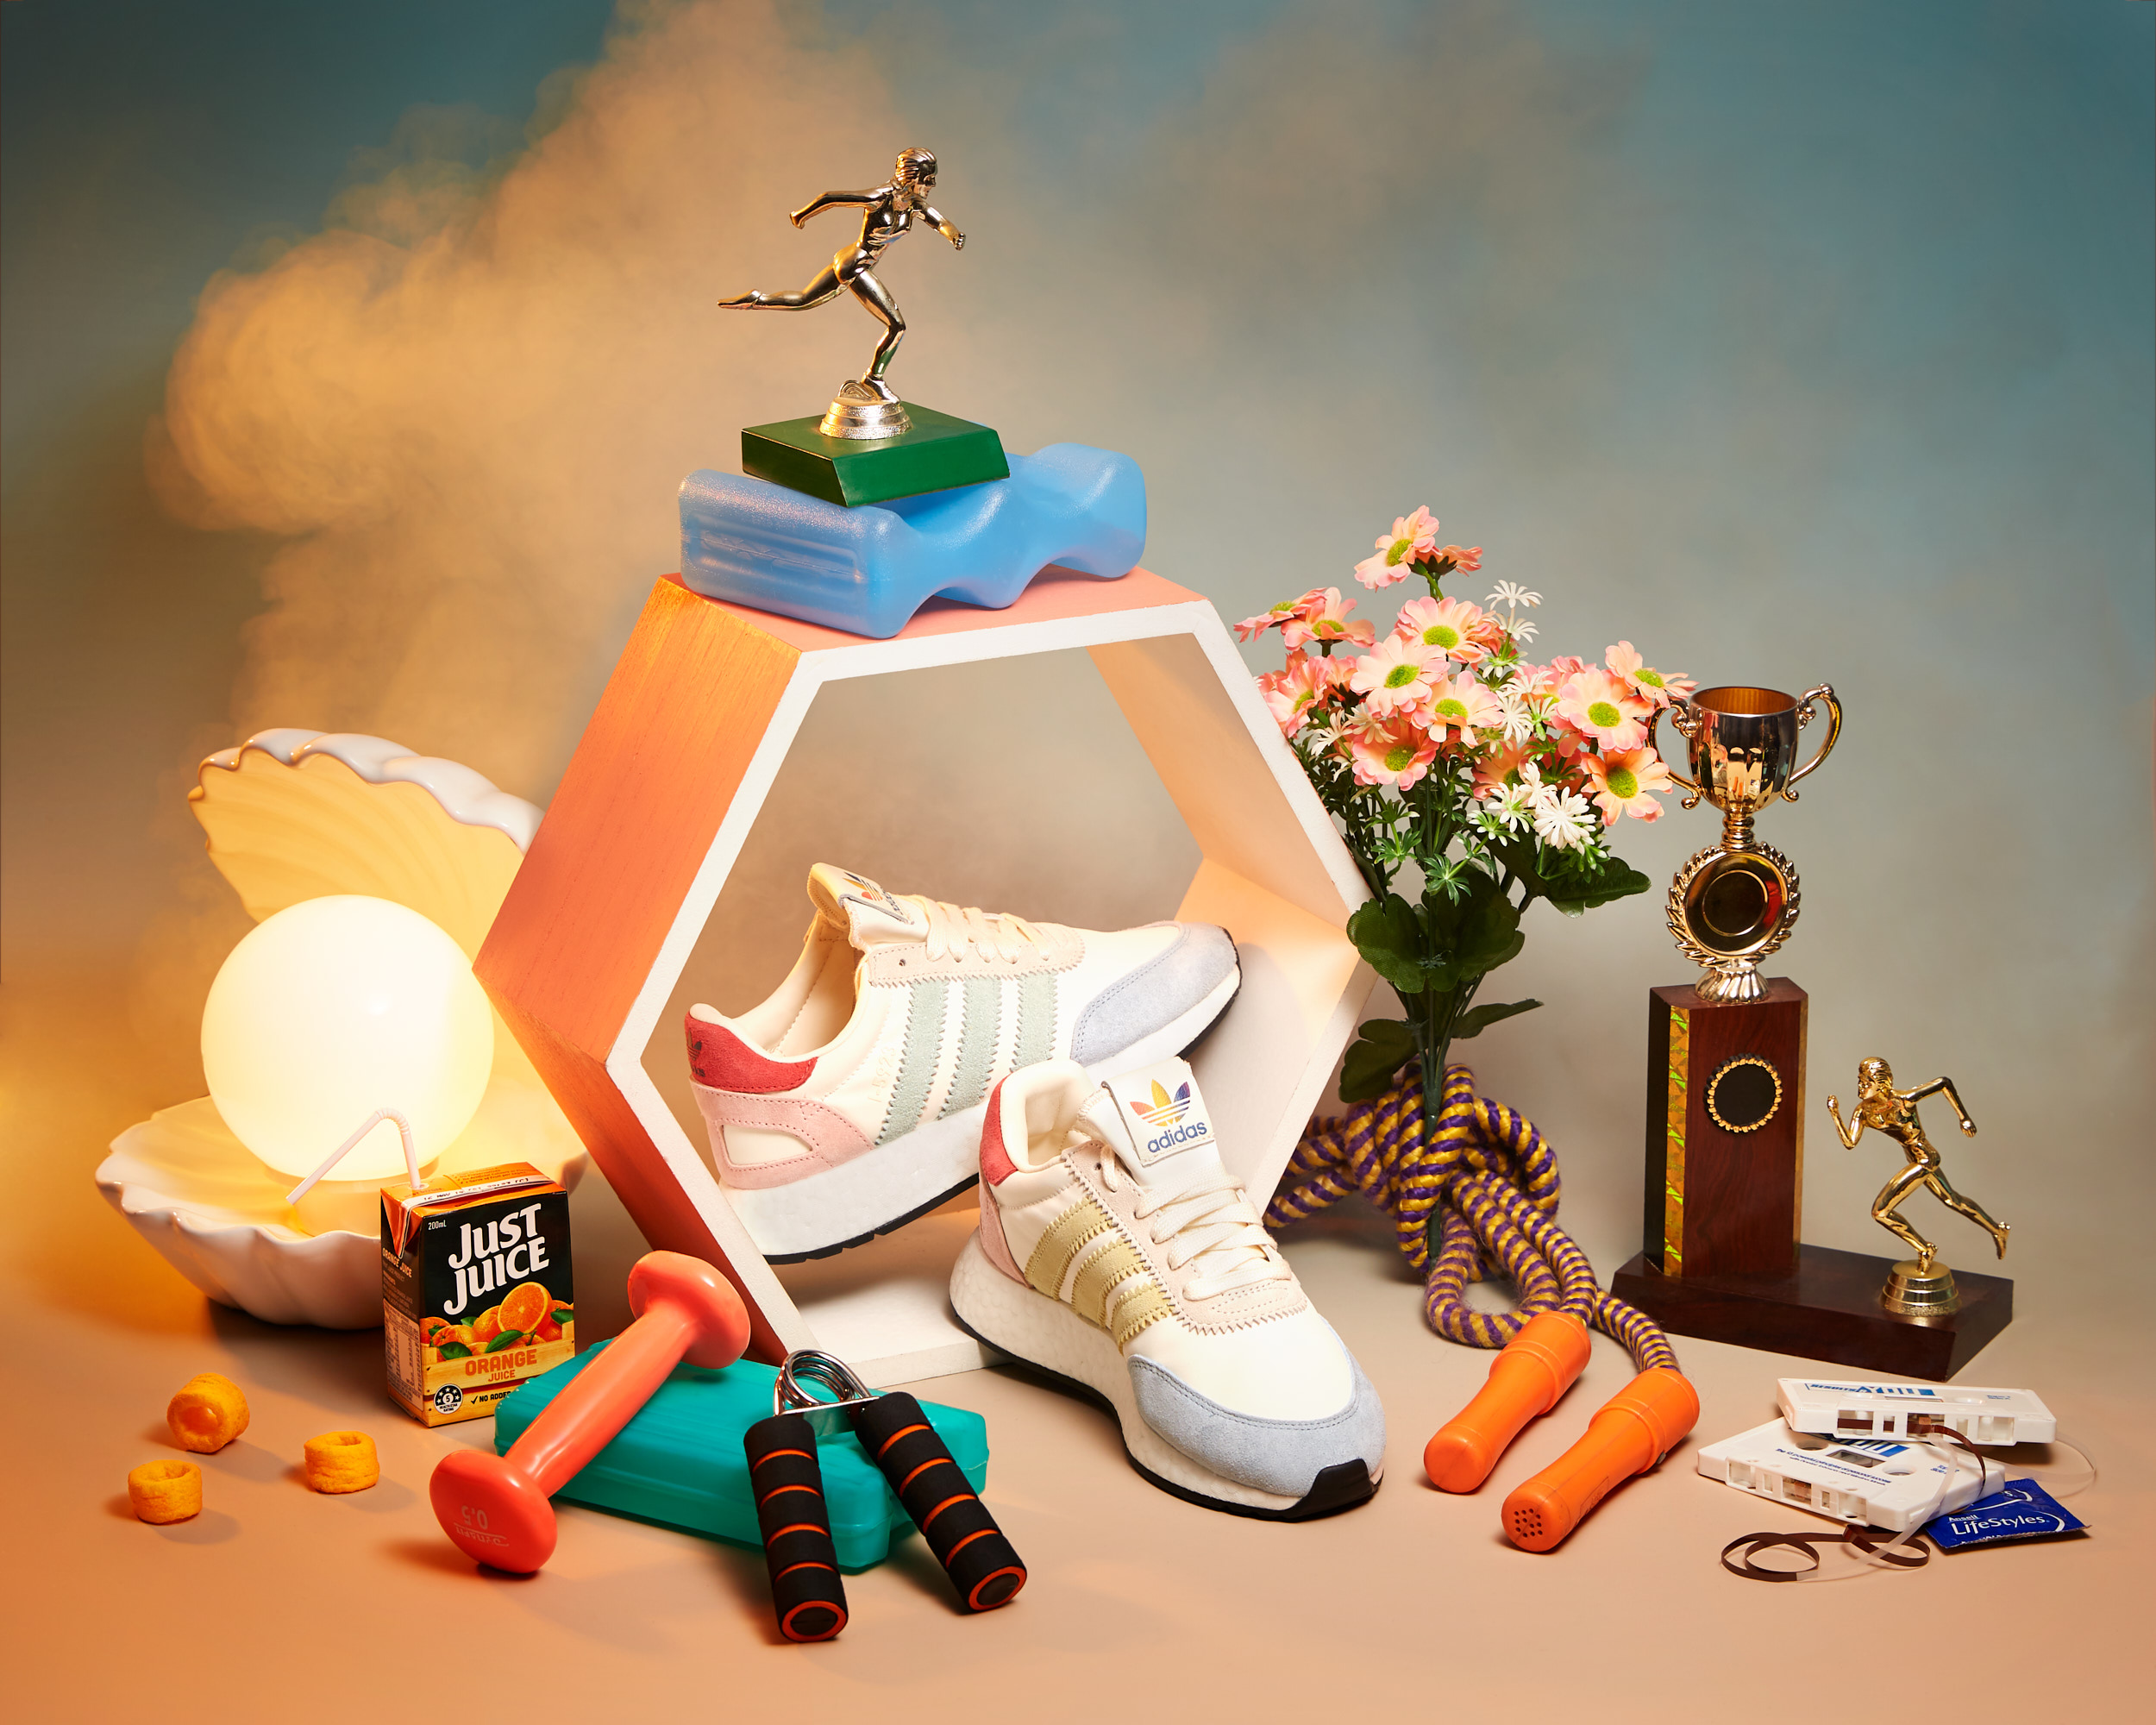 these nostalgic still lifes capture the crushed sporting dreams of